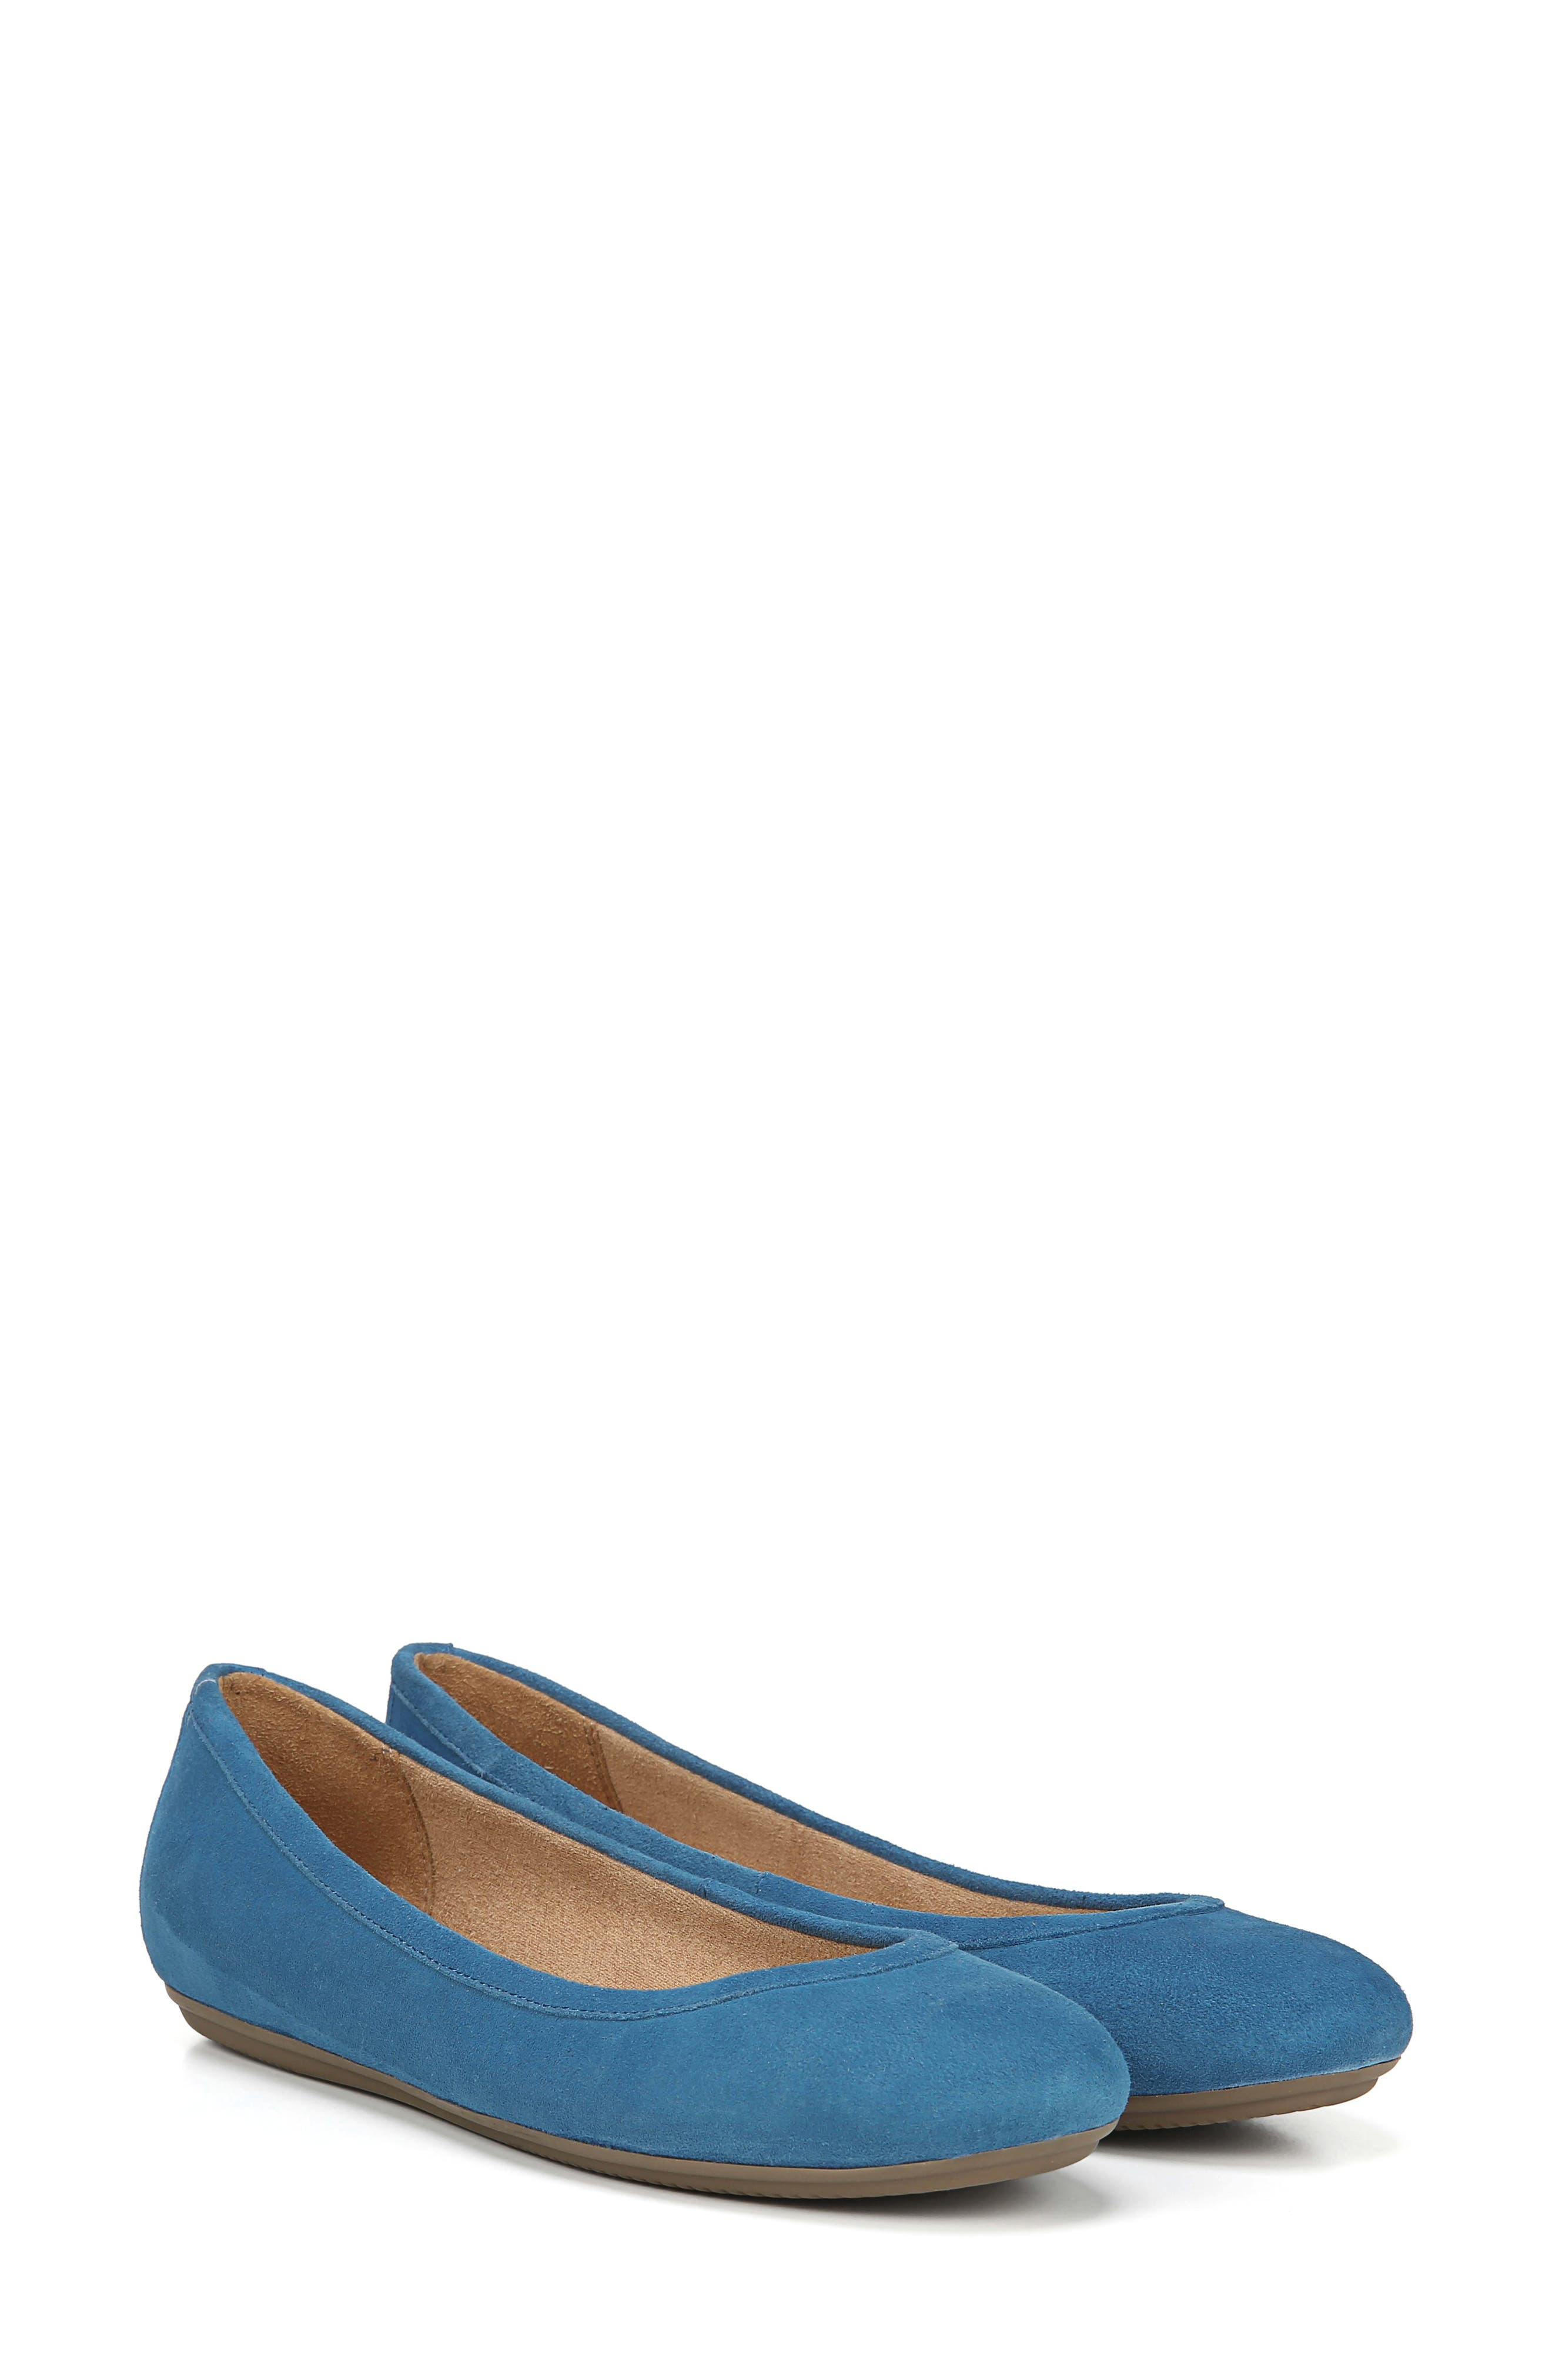 Brittany Flat,                             Alternate thumbnail 9, color,                             ADMIRAL BLUE LEATHER